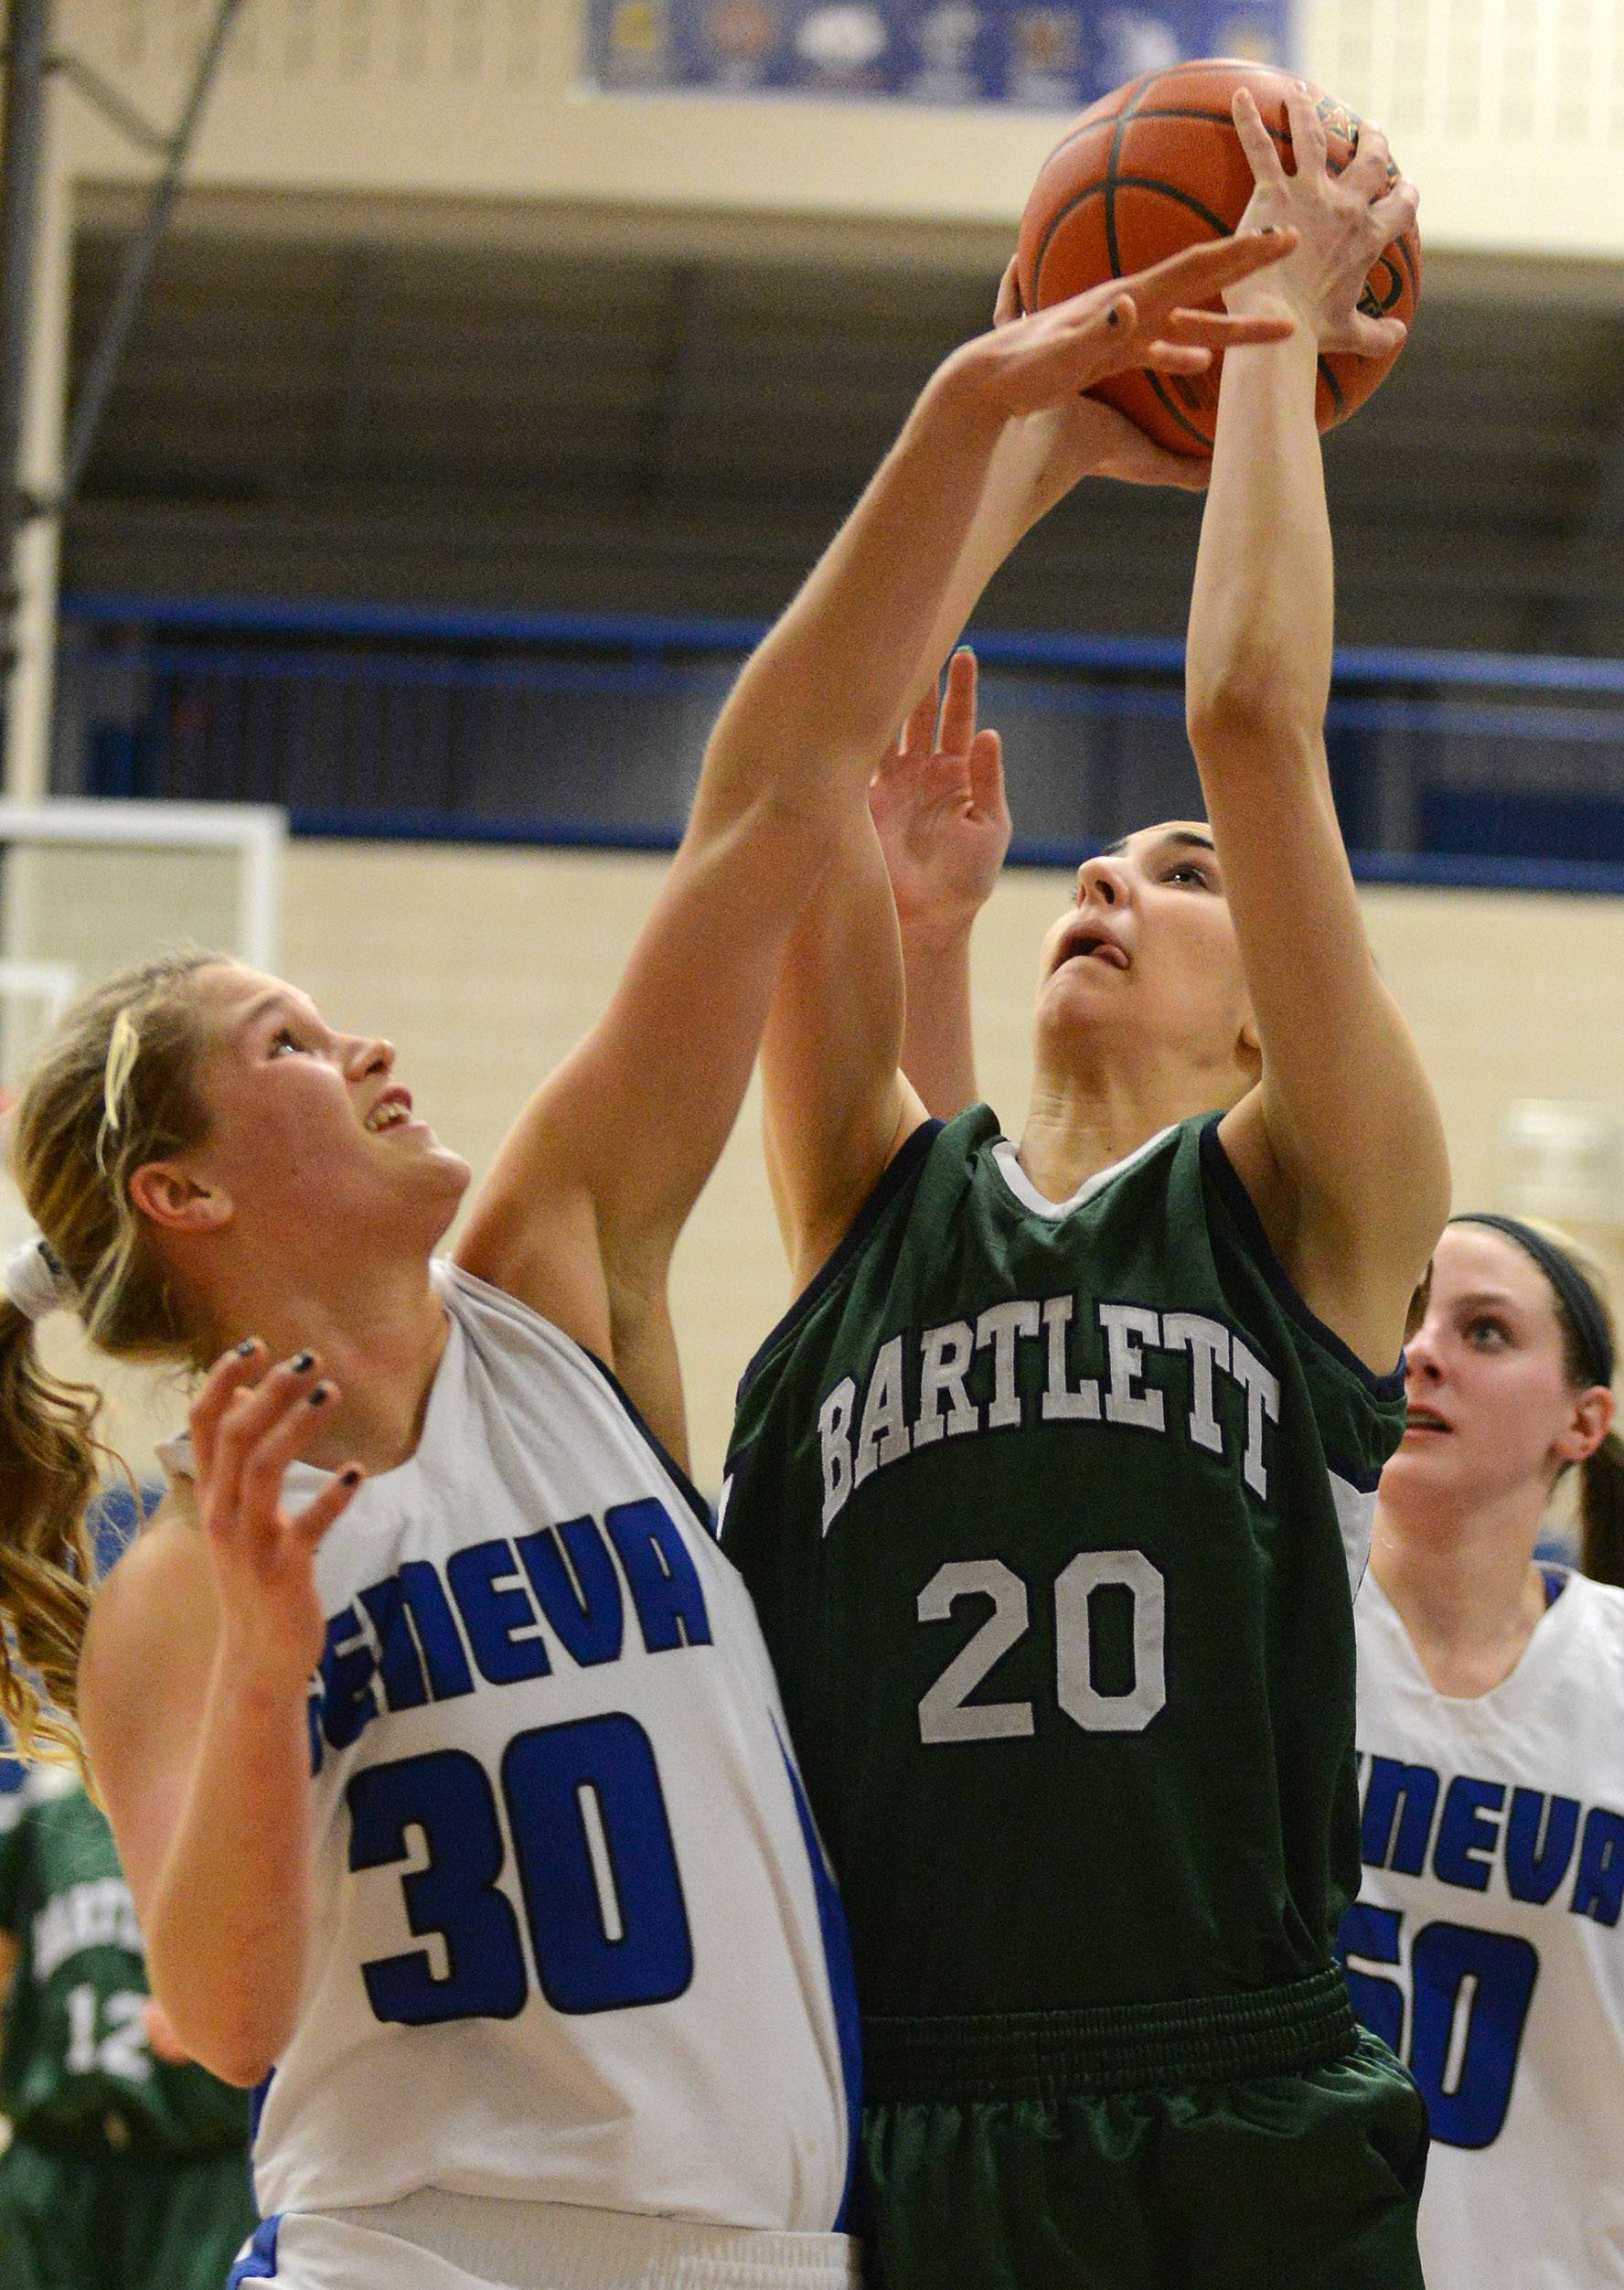 Bartlett's Elizabeth Arco shoots and scores against the defensive effort of Geneva's Janie McCloughan .